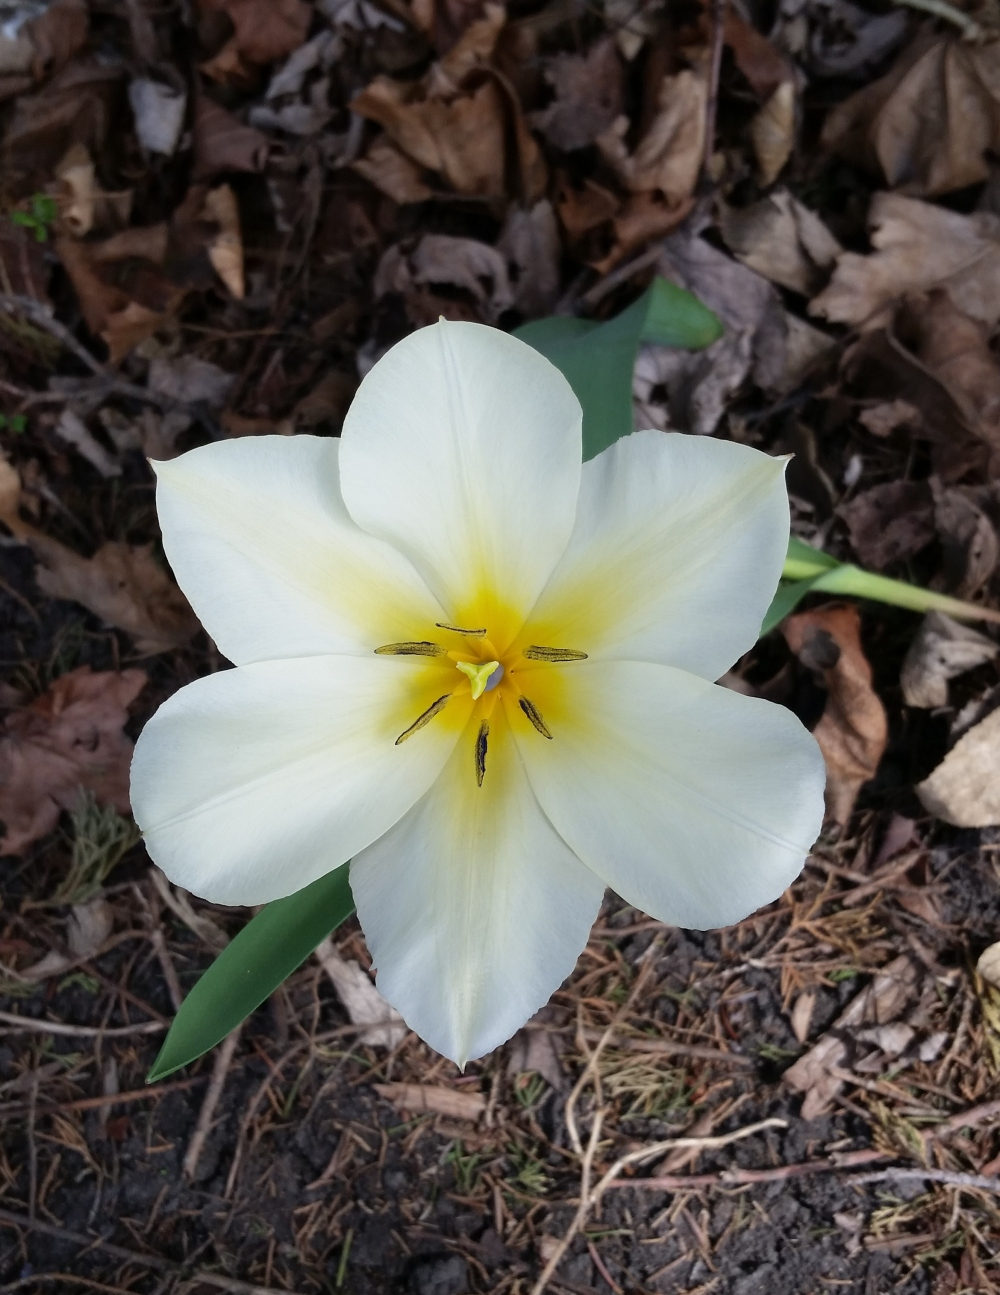 White tulip opens to the sun